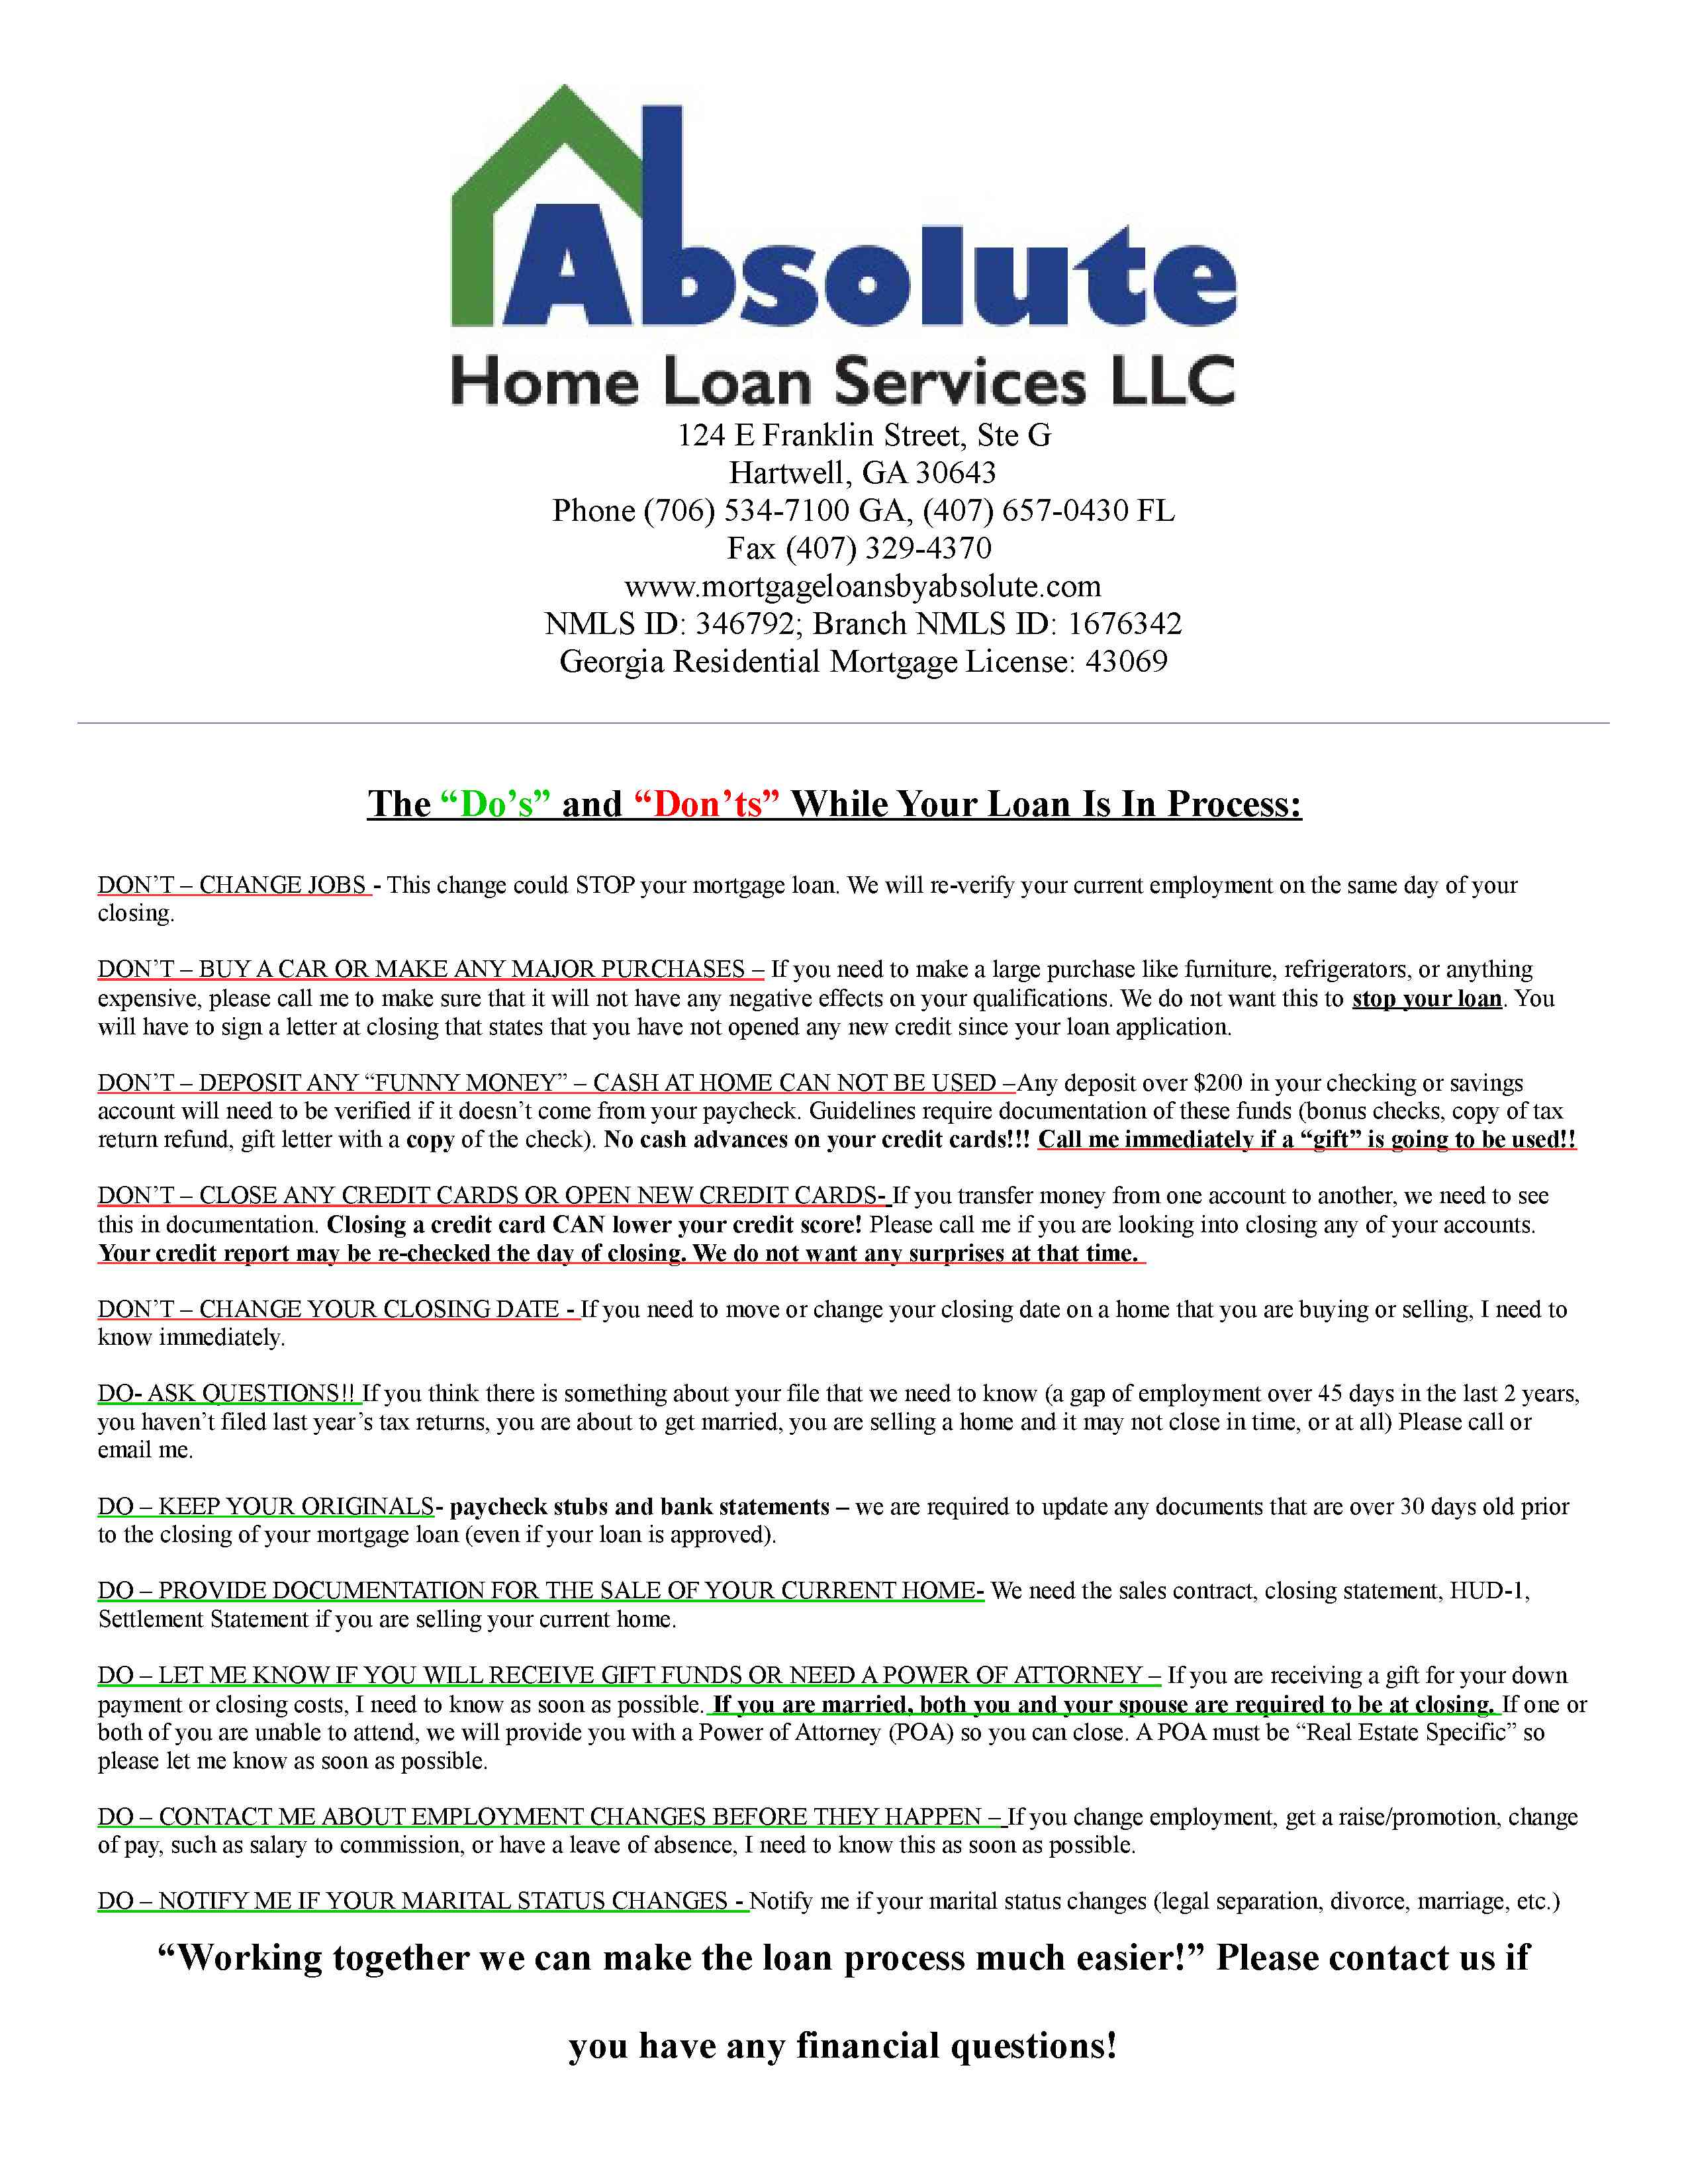 Important Documents | Absolute Home Loan Services, LLC